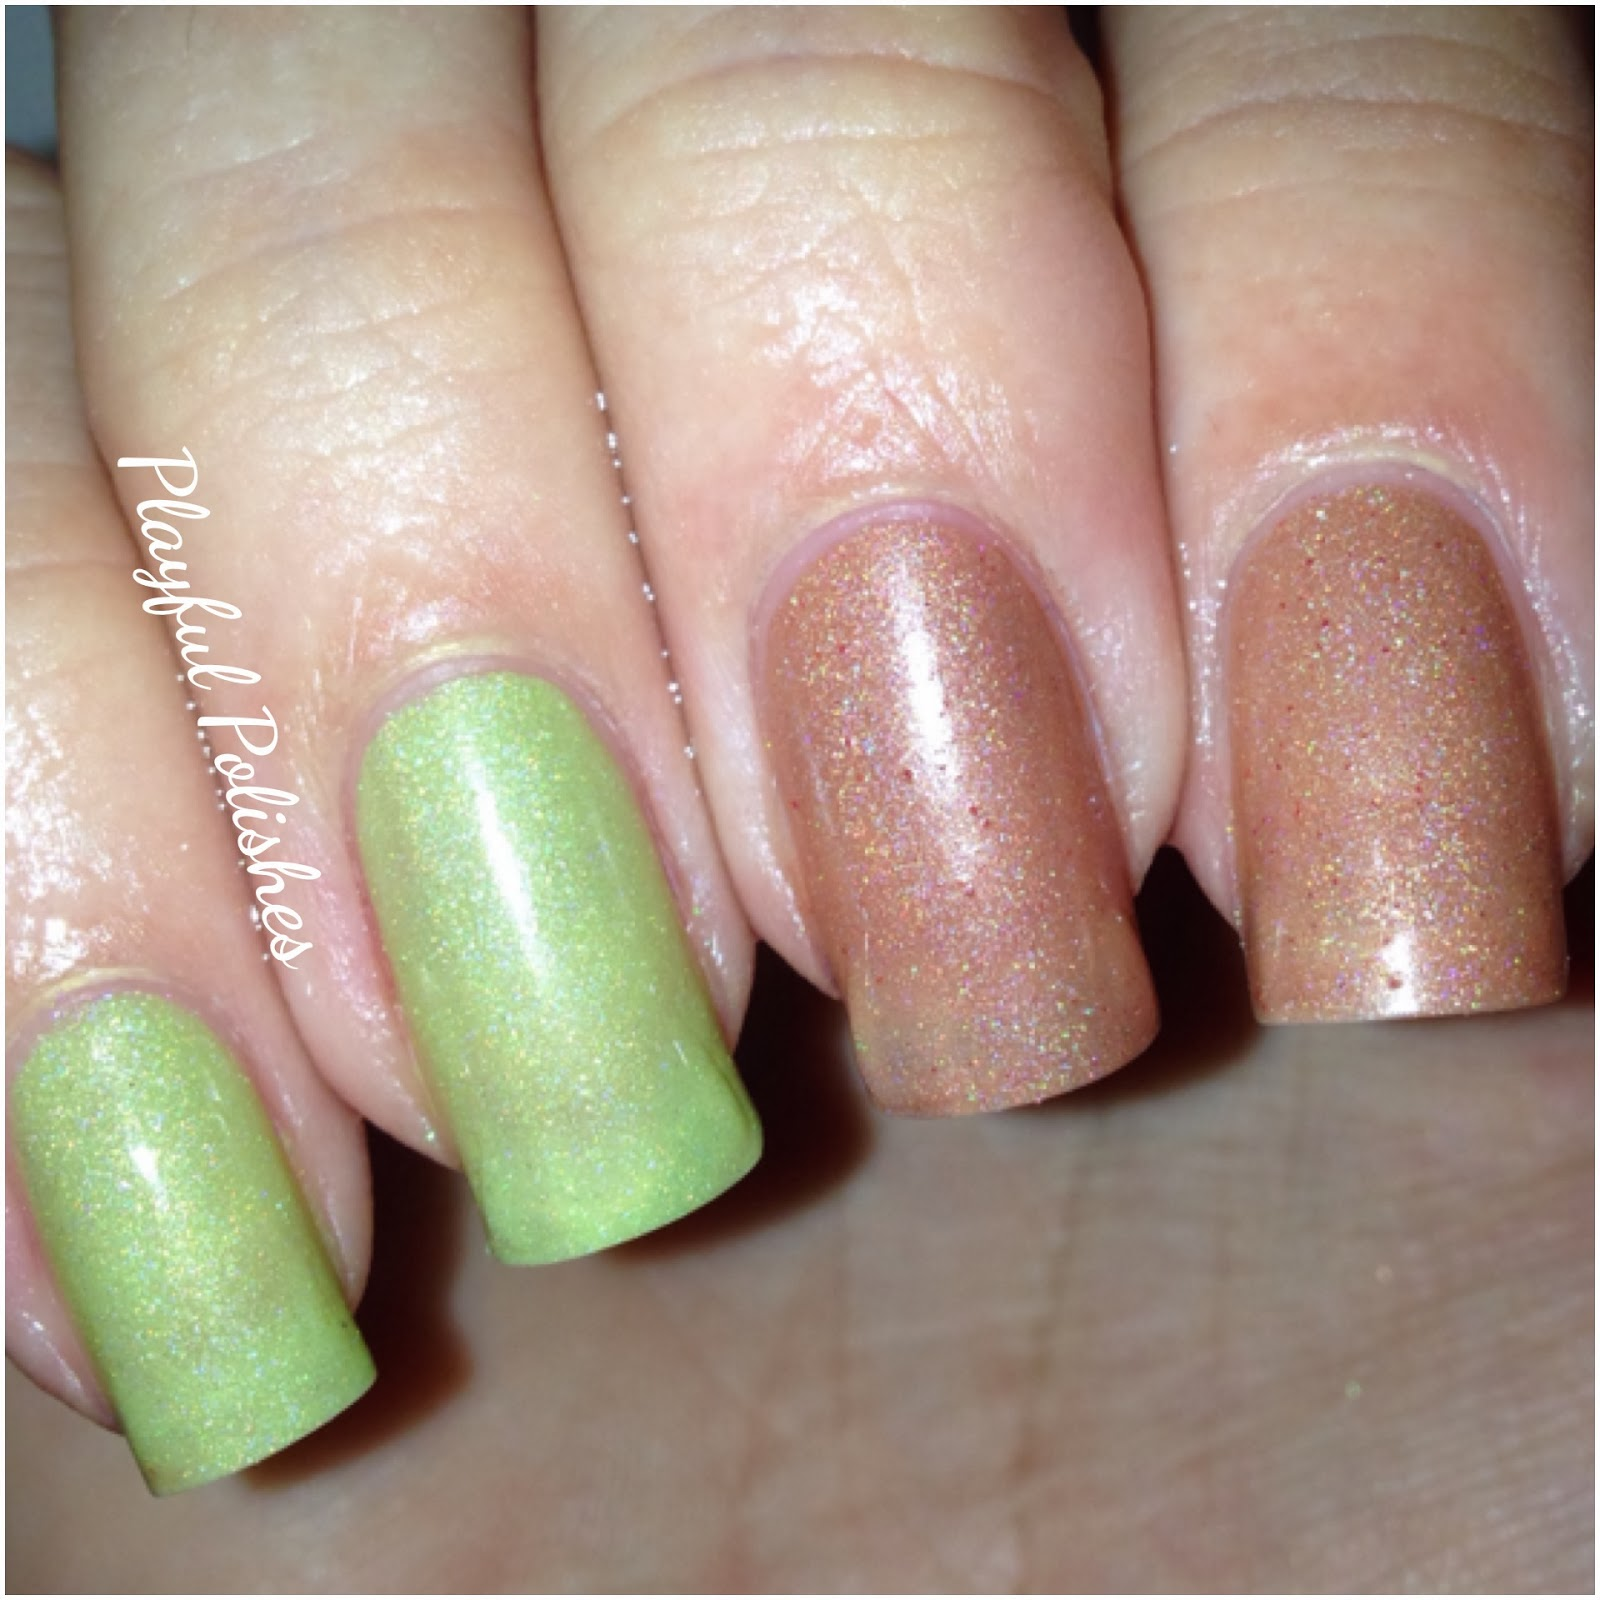 Playful Polishes: DOCTOR LACQUER HOLO/THERMAL POLISHES